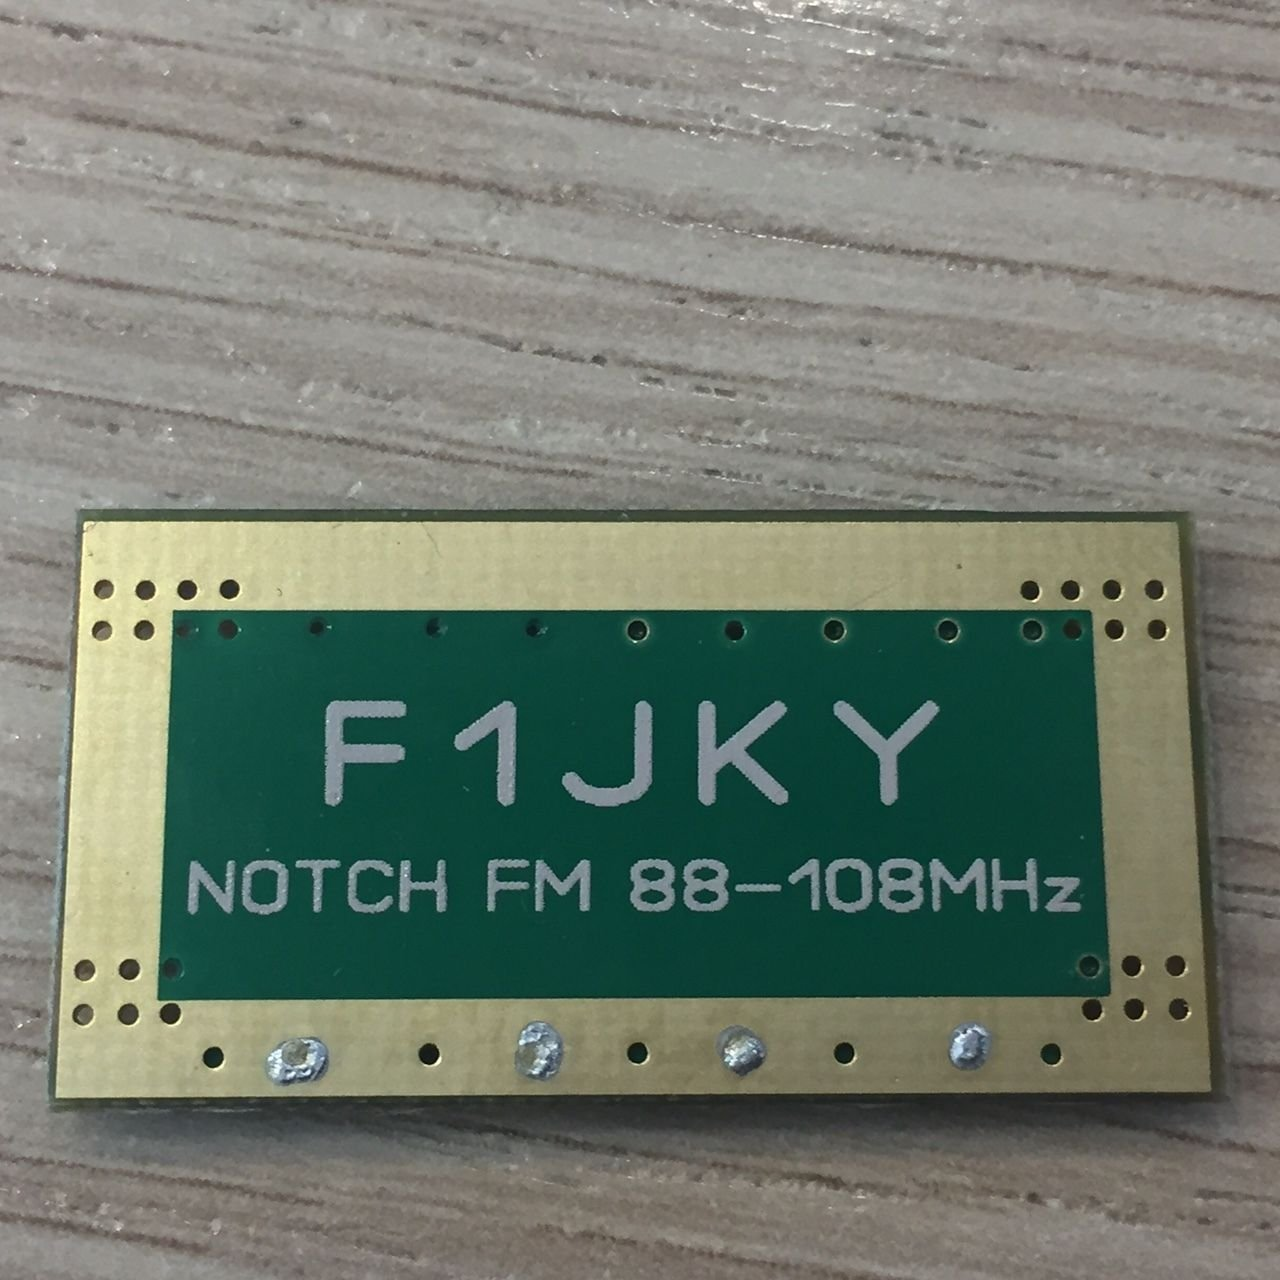 Fm Notch 88 108 Mhz Band Reject Filter Fr Receivers Low Pass For Sdr Clean Rx Lowers Noise A Home Audio Theater